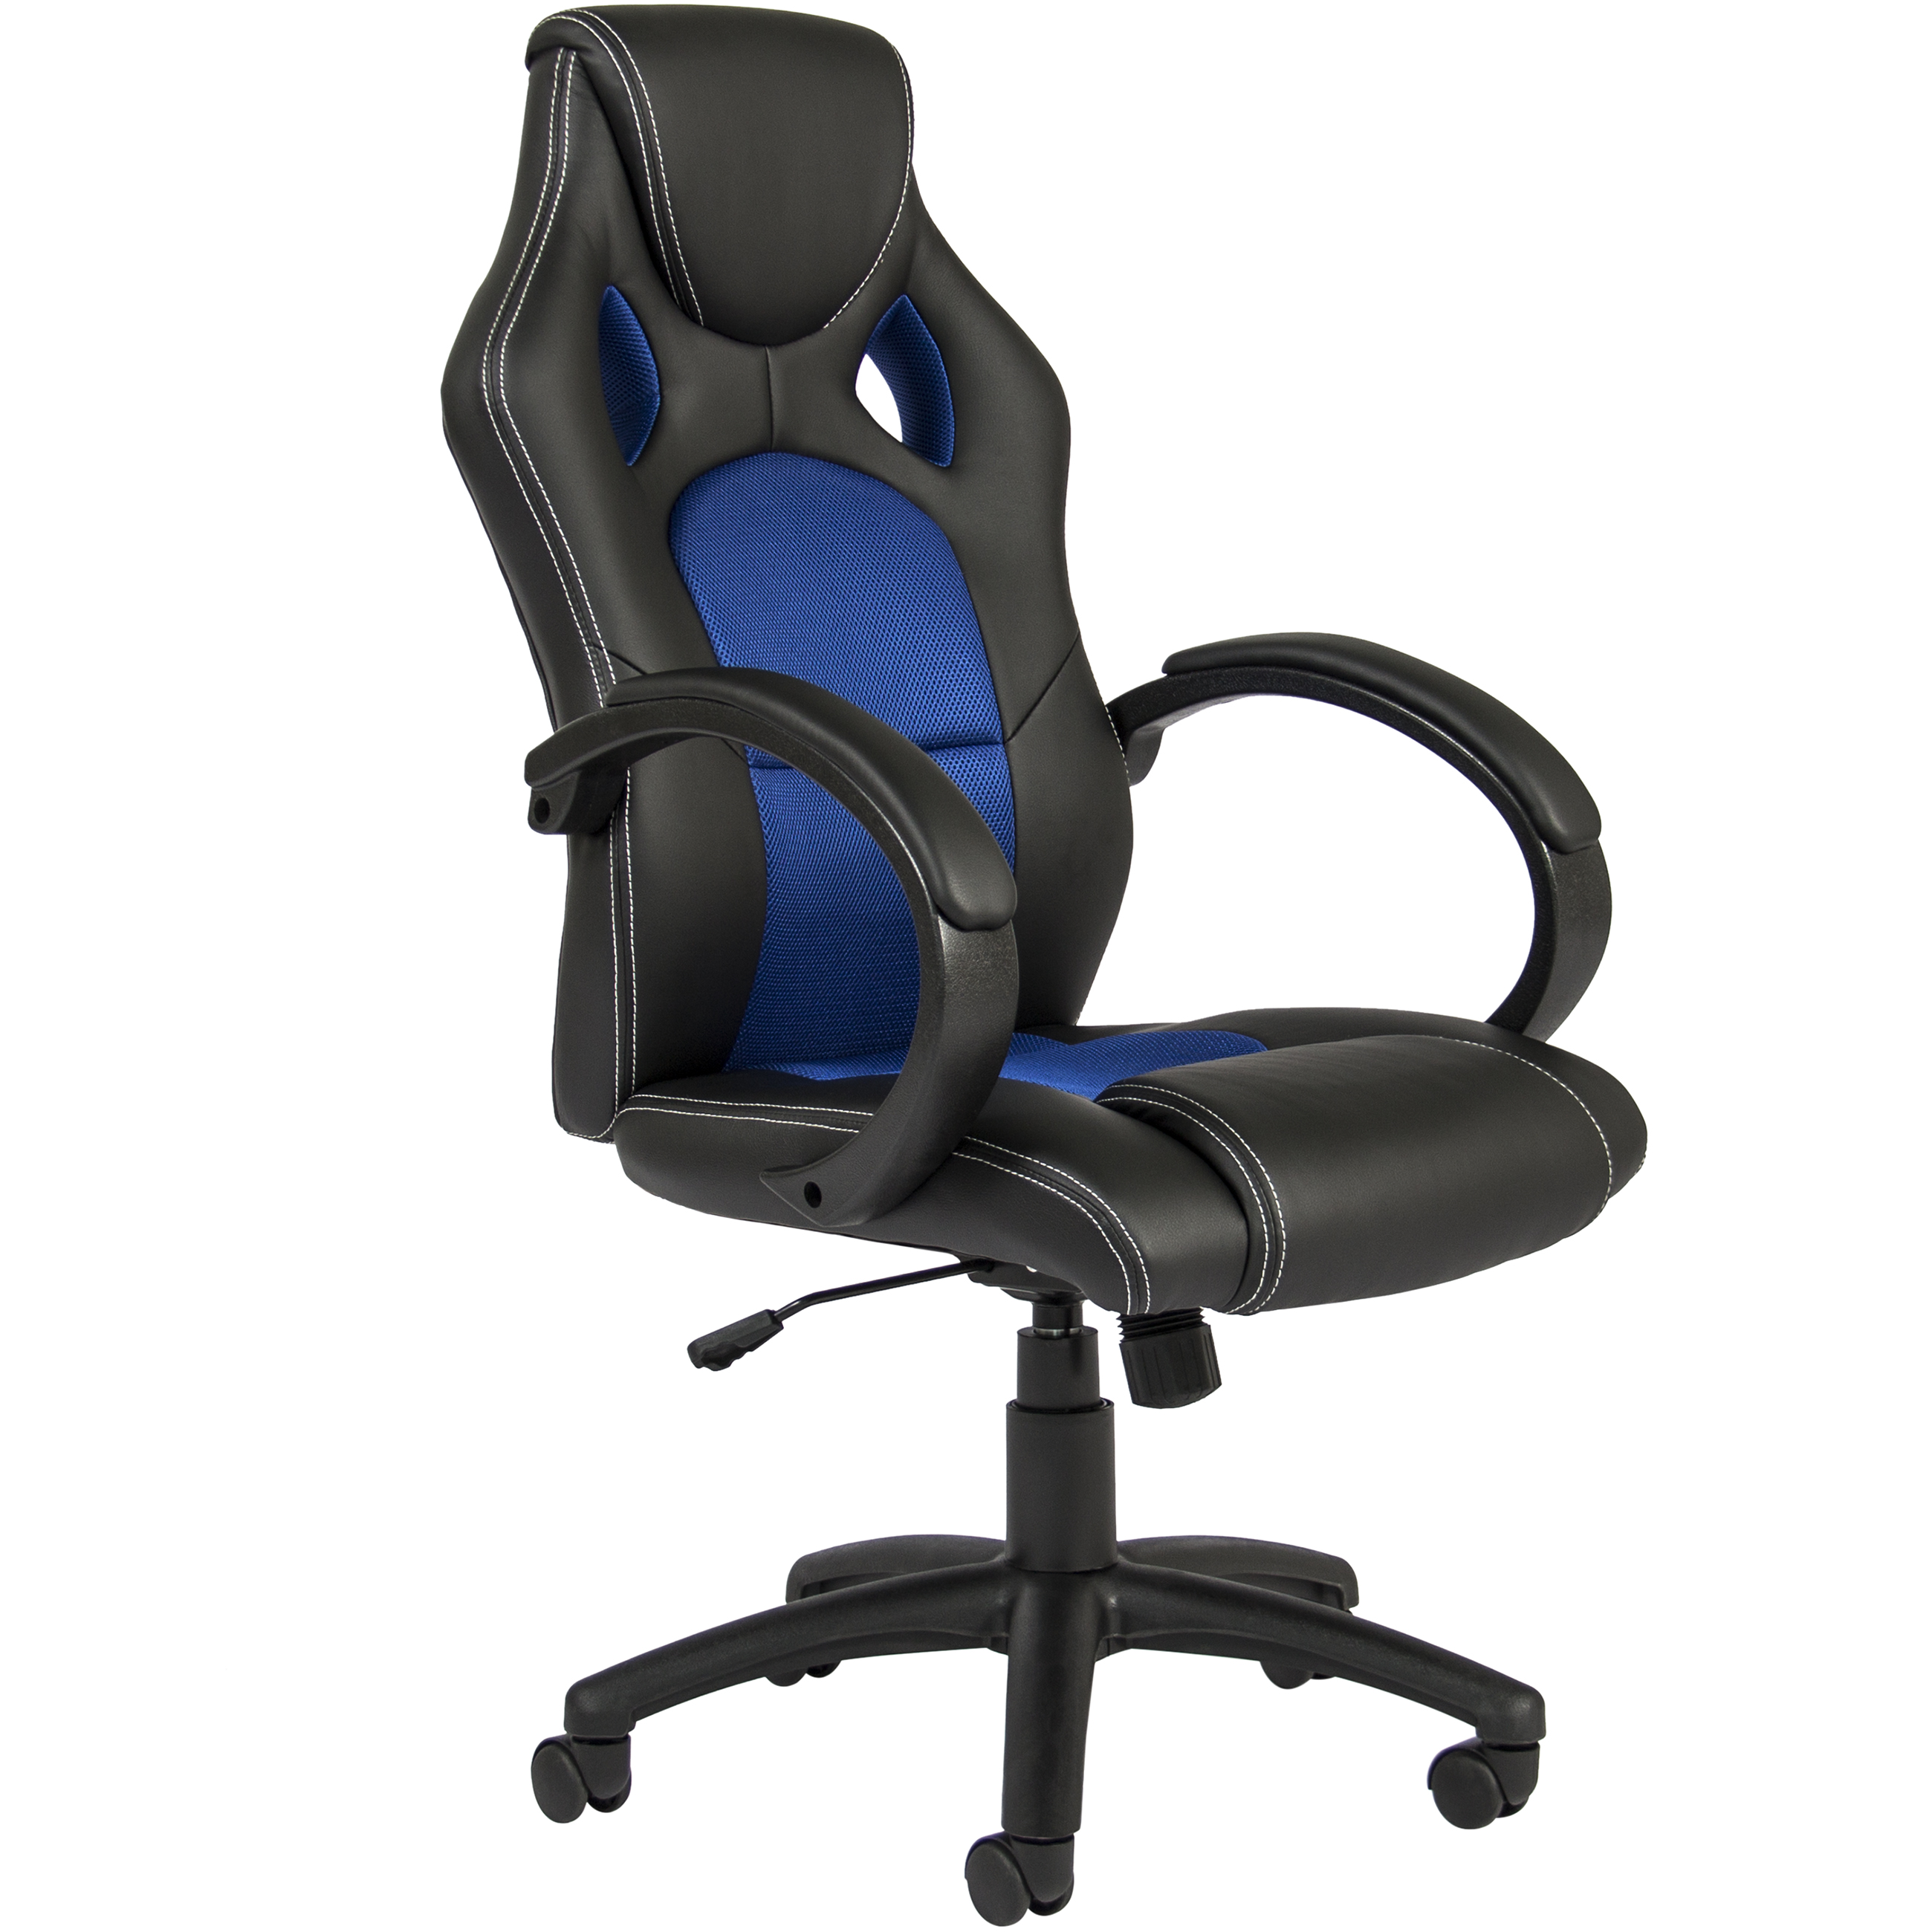 comfort office chair. BCP Executive Racing Gaming Office Desk Chair PU Leather Swivel - Back Walmart.com Comfort T